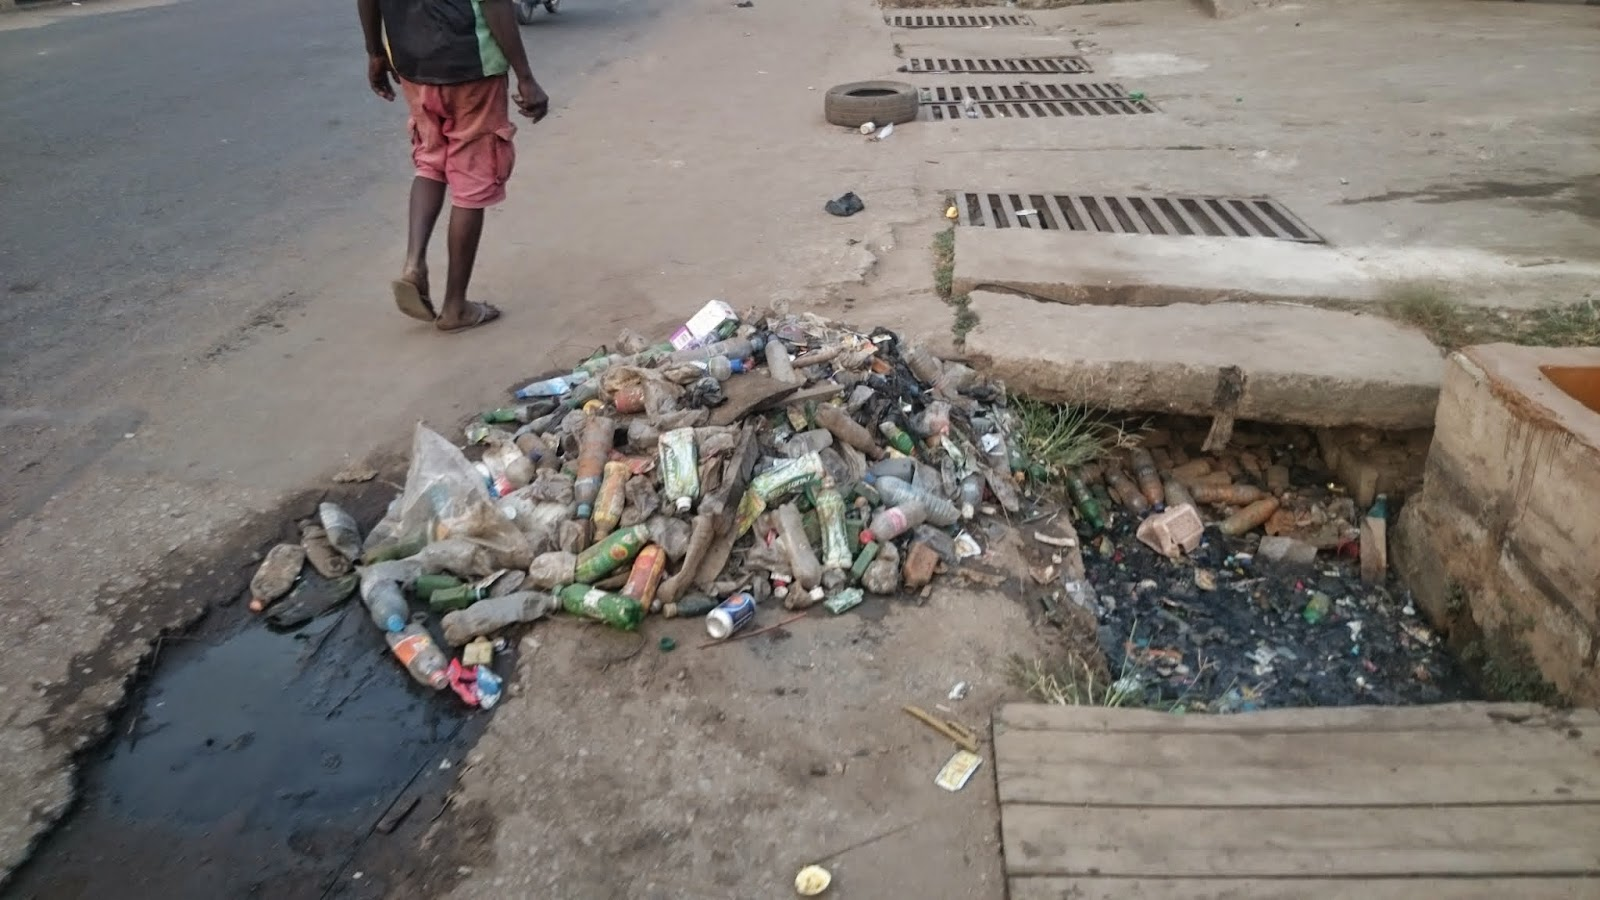 Waste pollution affecting drainages in Iyana Ipaja area of Lagos